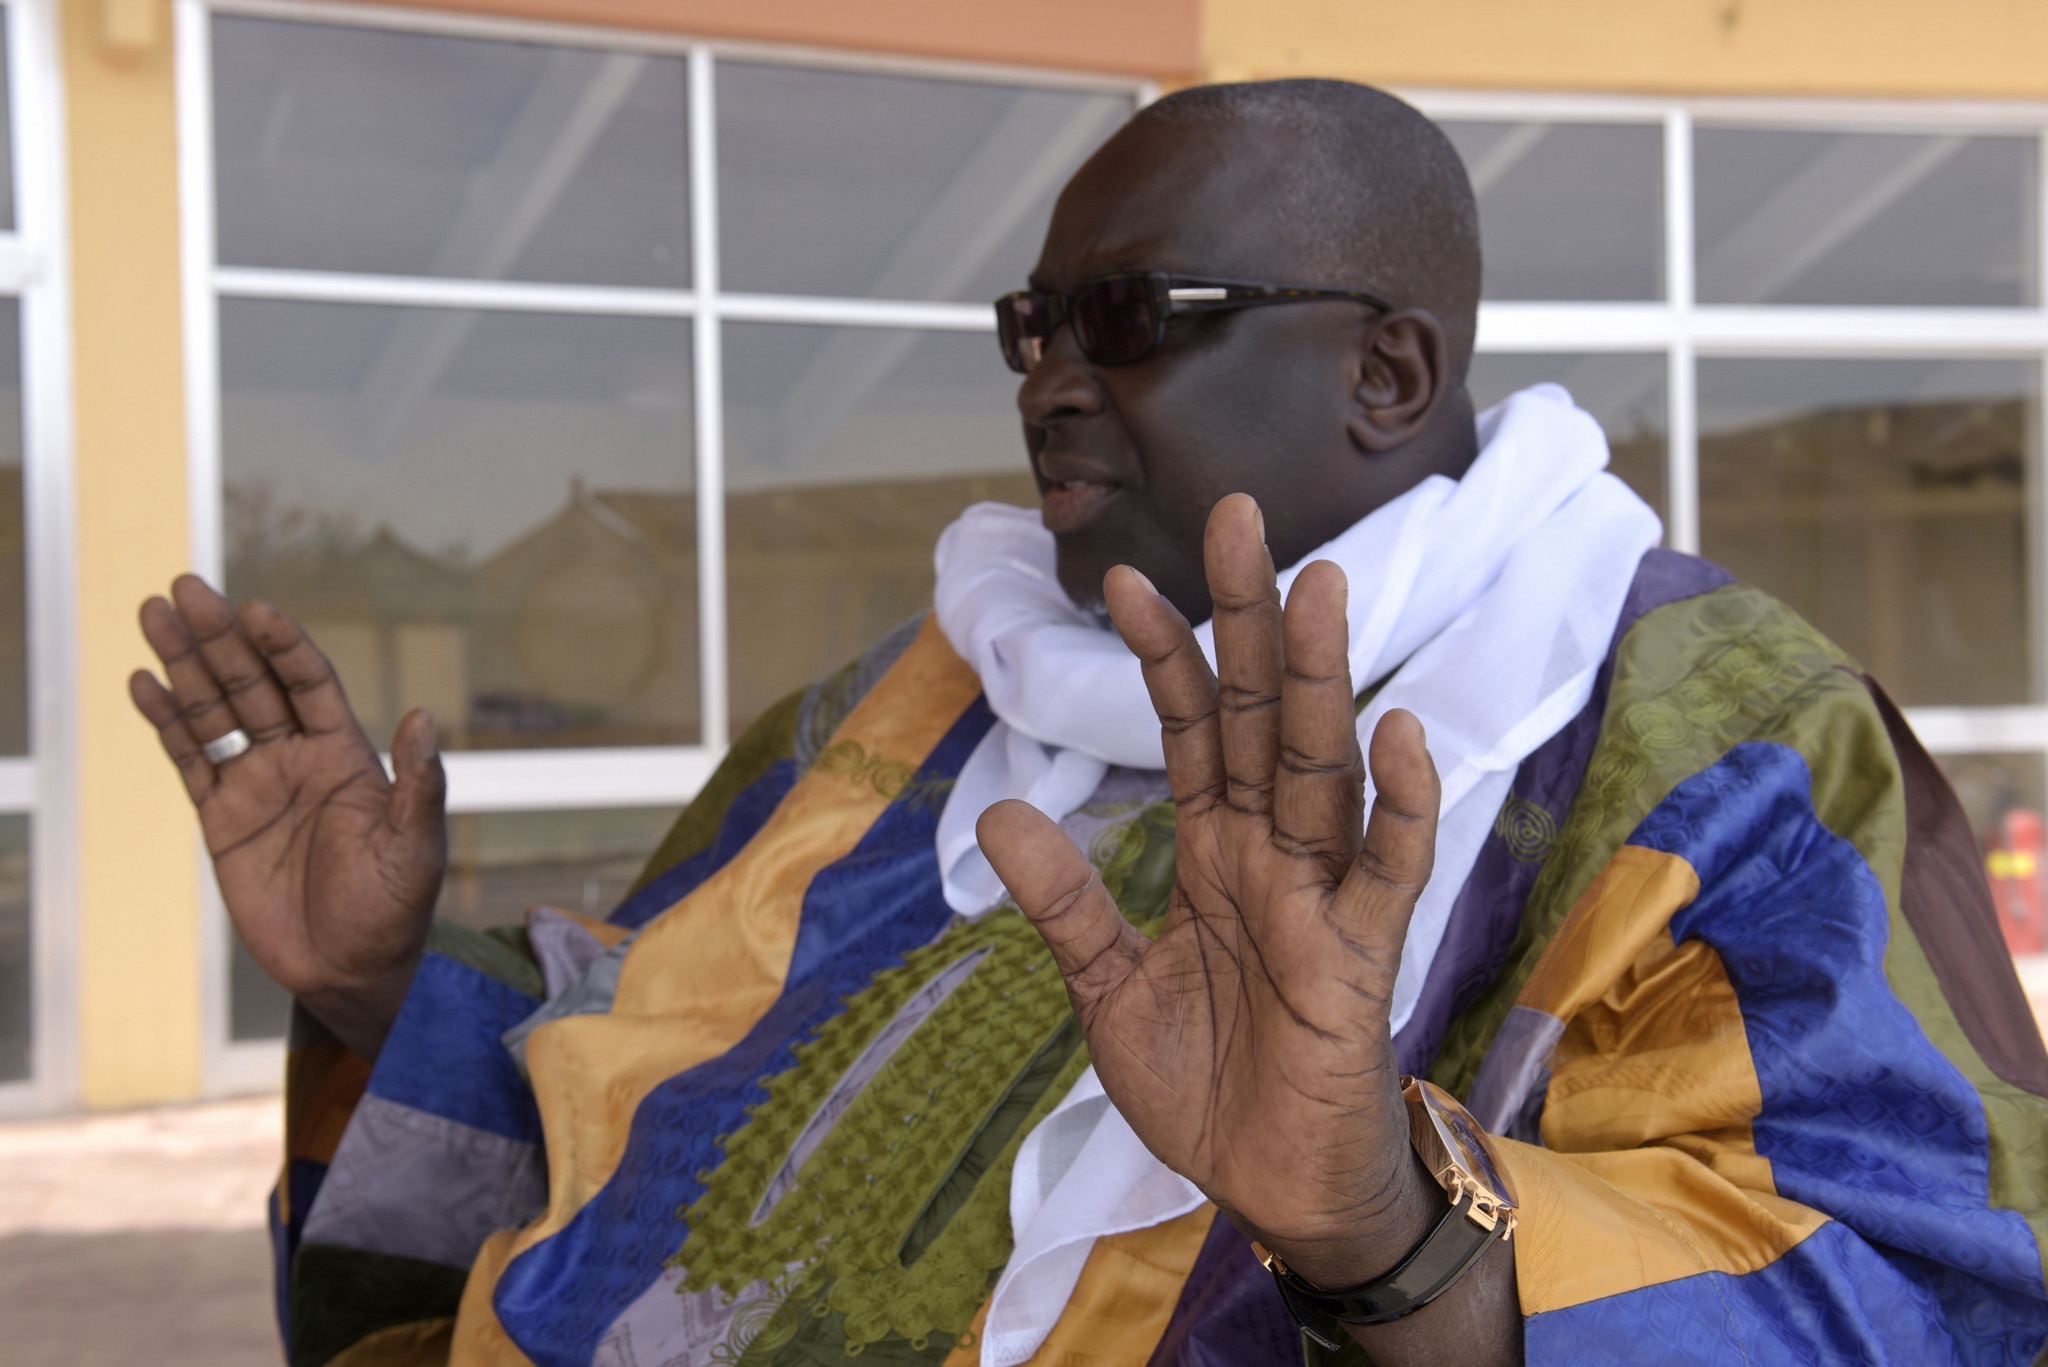 A five-year jail term has been requested for Papa Massata Diack, who has refused to be extradited to France ©Getty Images